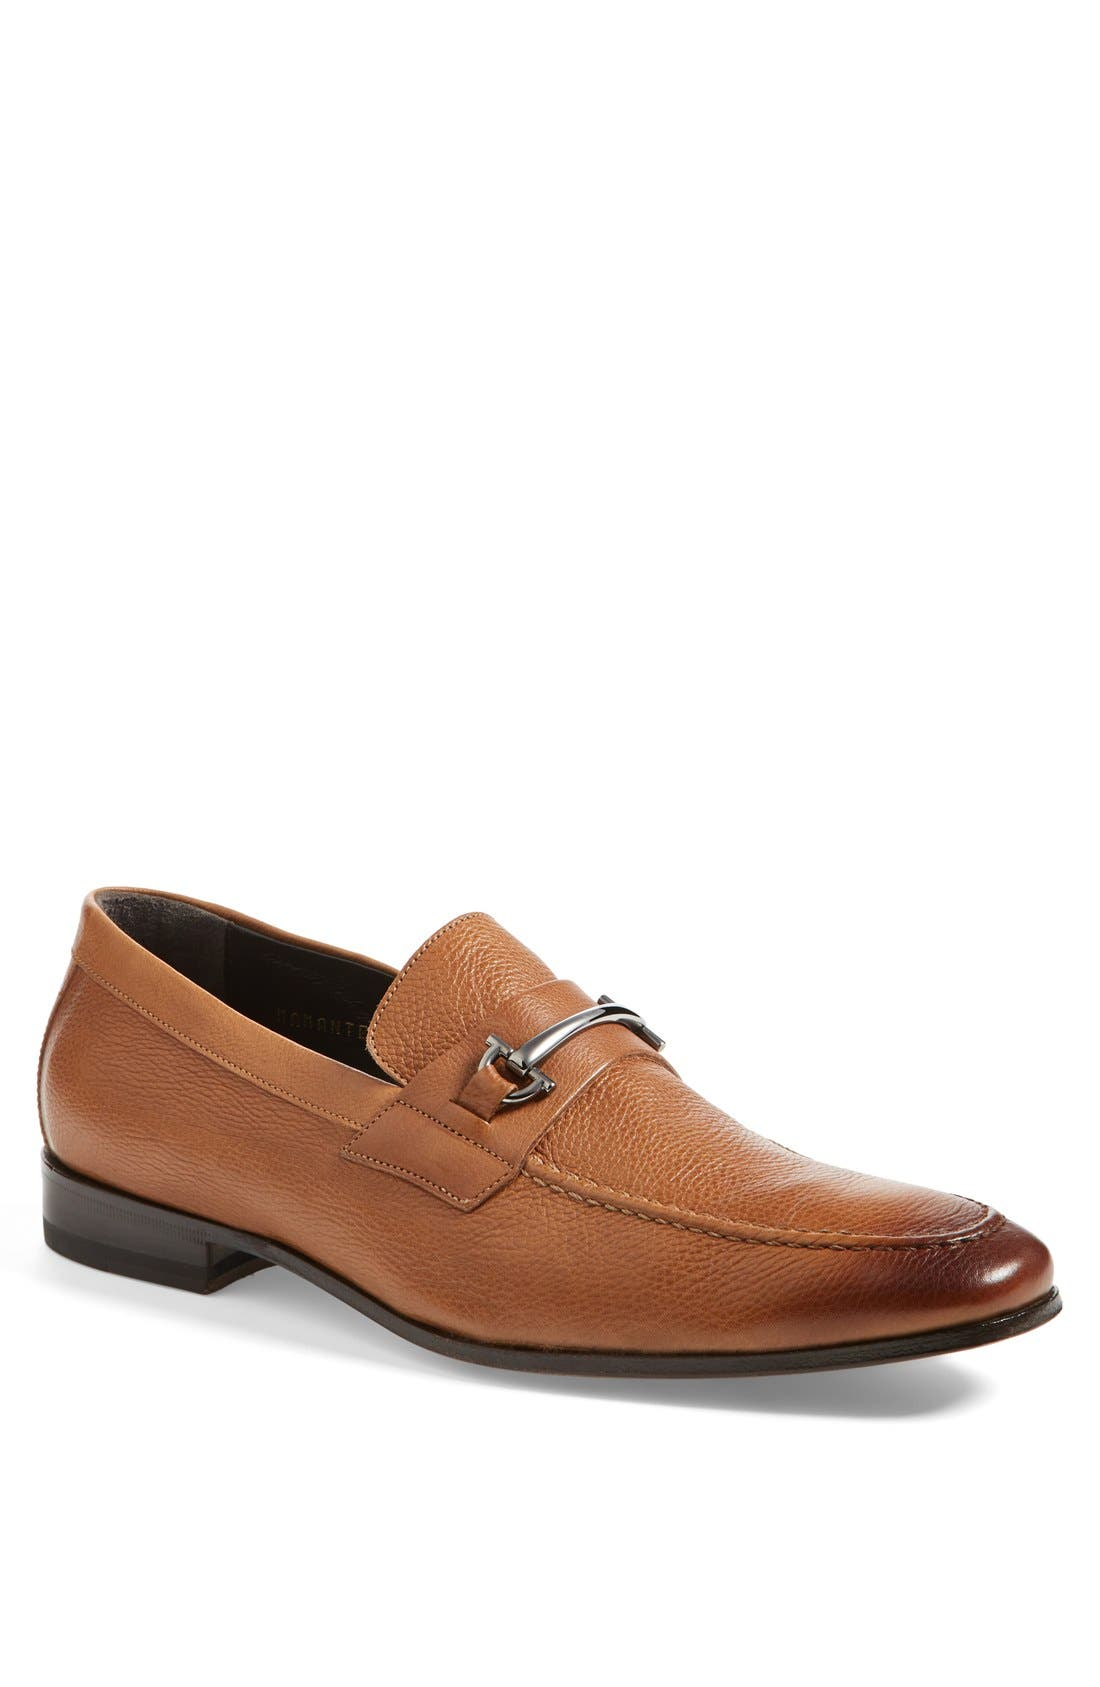 'Mamante II' Pebbled Leather Loafer,                         Main,                         color, 233